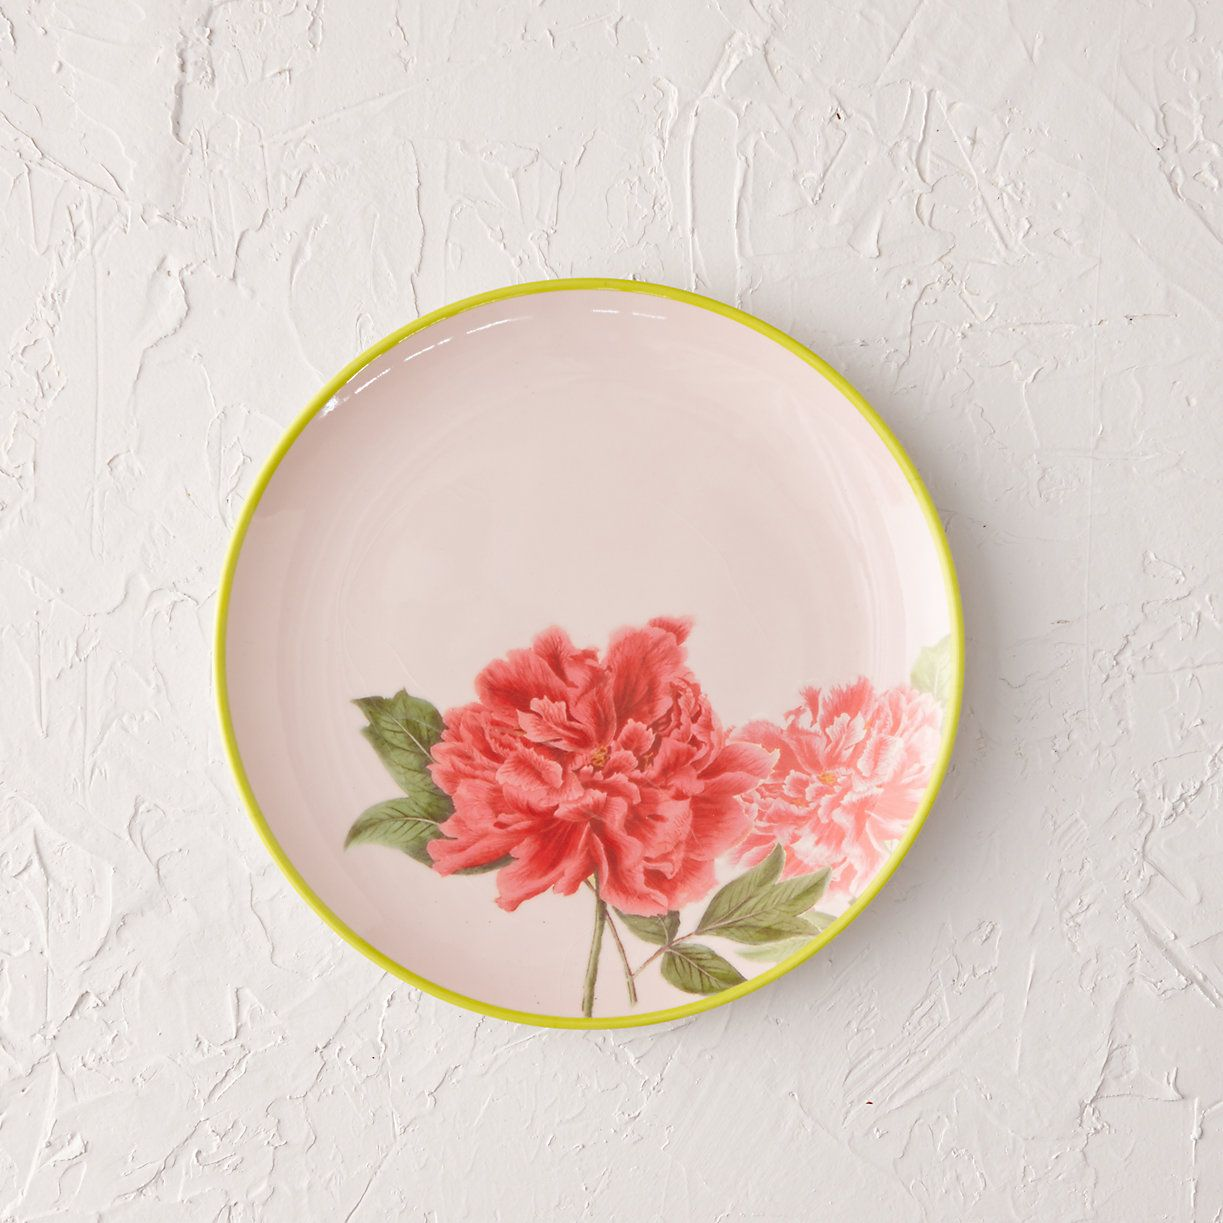 ... this vintage-inspired melamine plate is perfect for picnics and outdoor gatherings.- Melamine- Dishwasher safe- Do not microwave or expose to ... & Peony Melamine Side Plate | Side plates Outdoor dining and Dinnerware